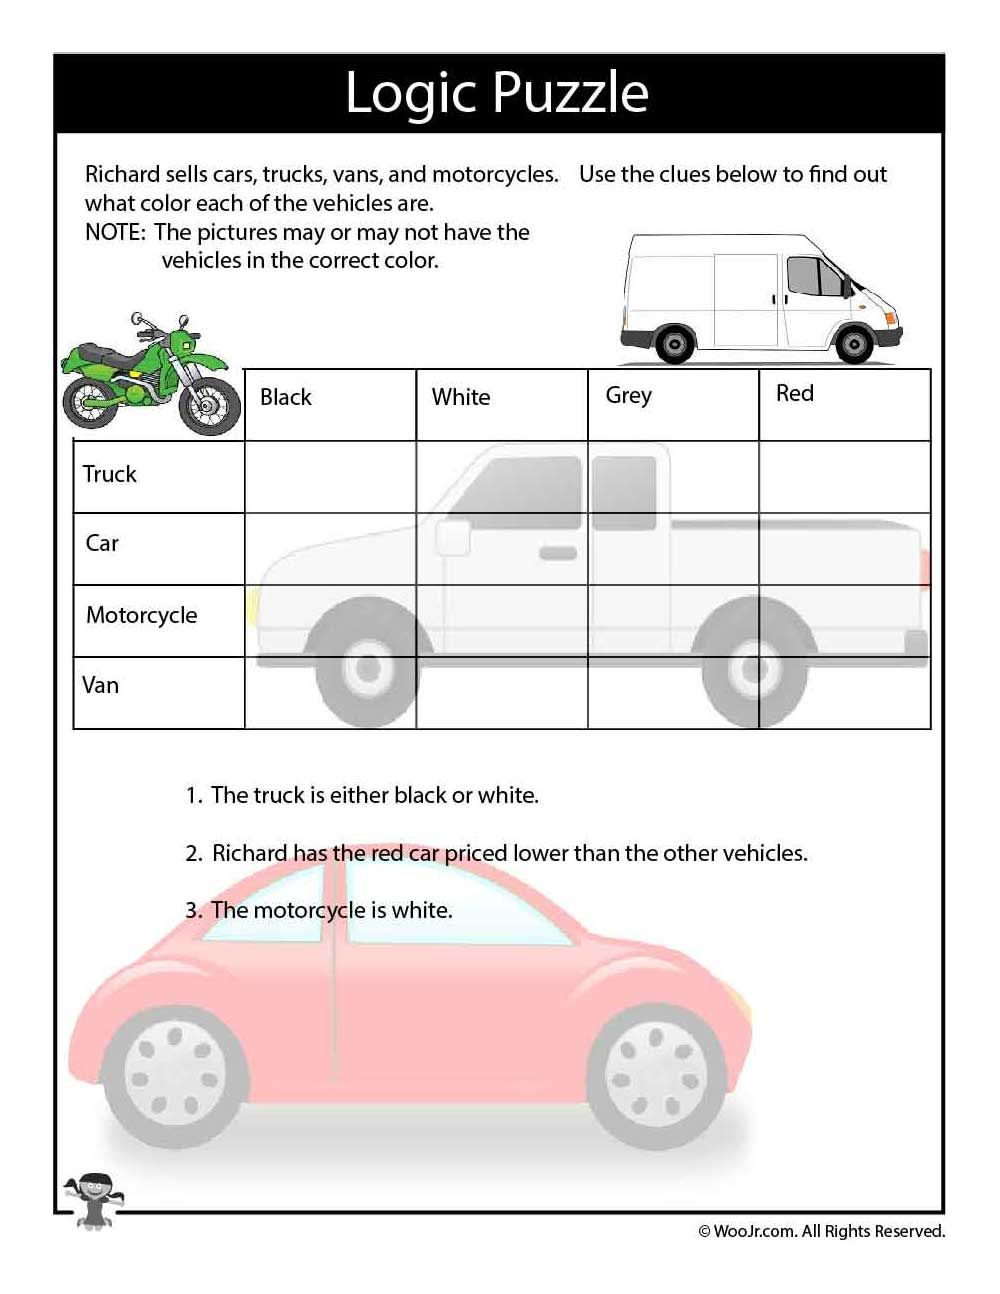 photograph relating to Logic Puzzles Easy Printable referred to as Variables that Transfer Logic Puzzle Printable Mind teasers